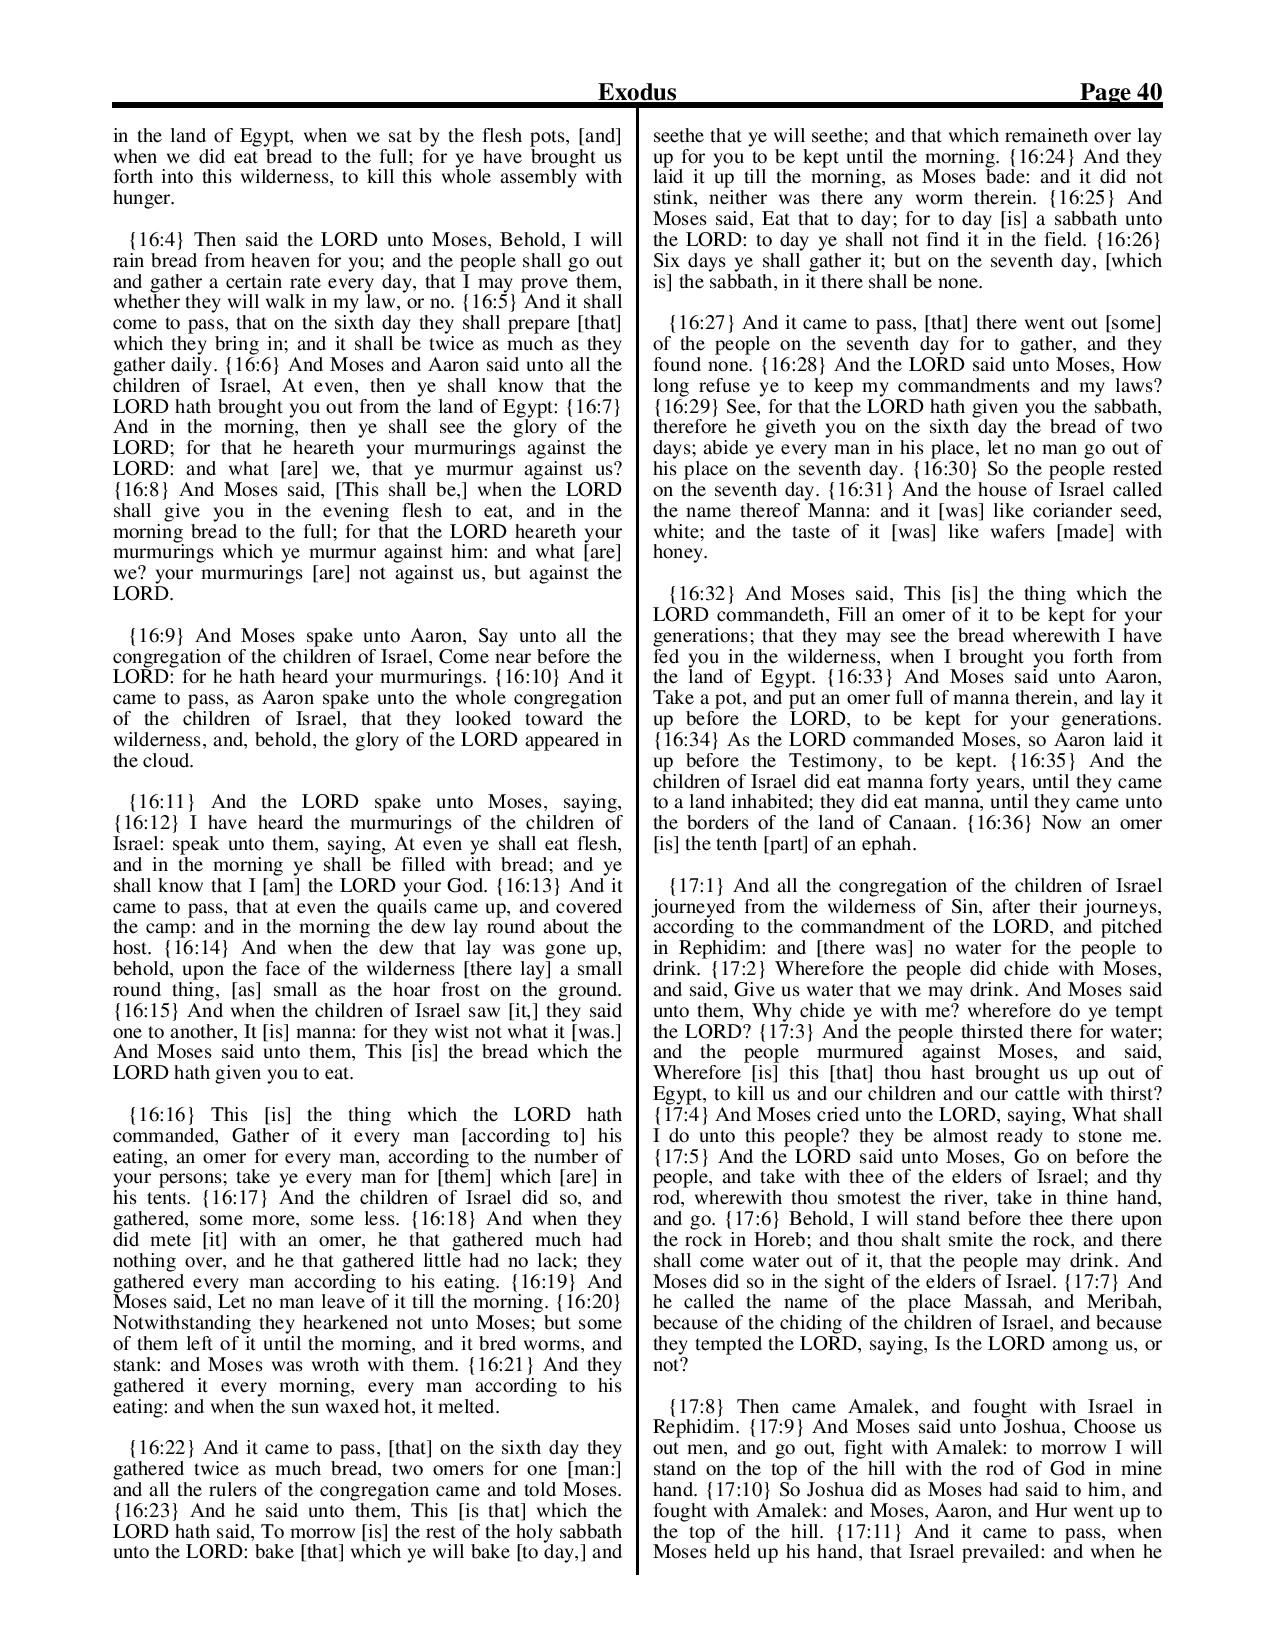 King-James-Bible-KJV-Bible-PDF-page-061